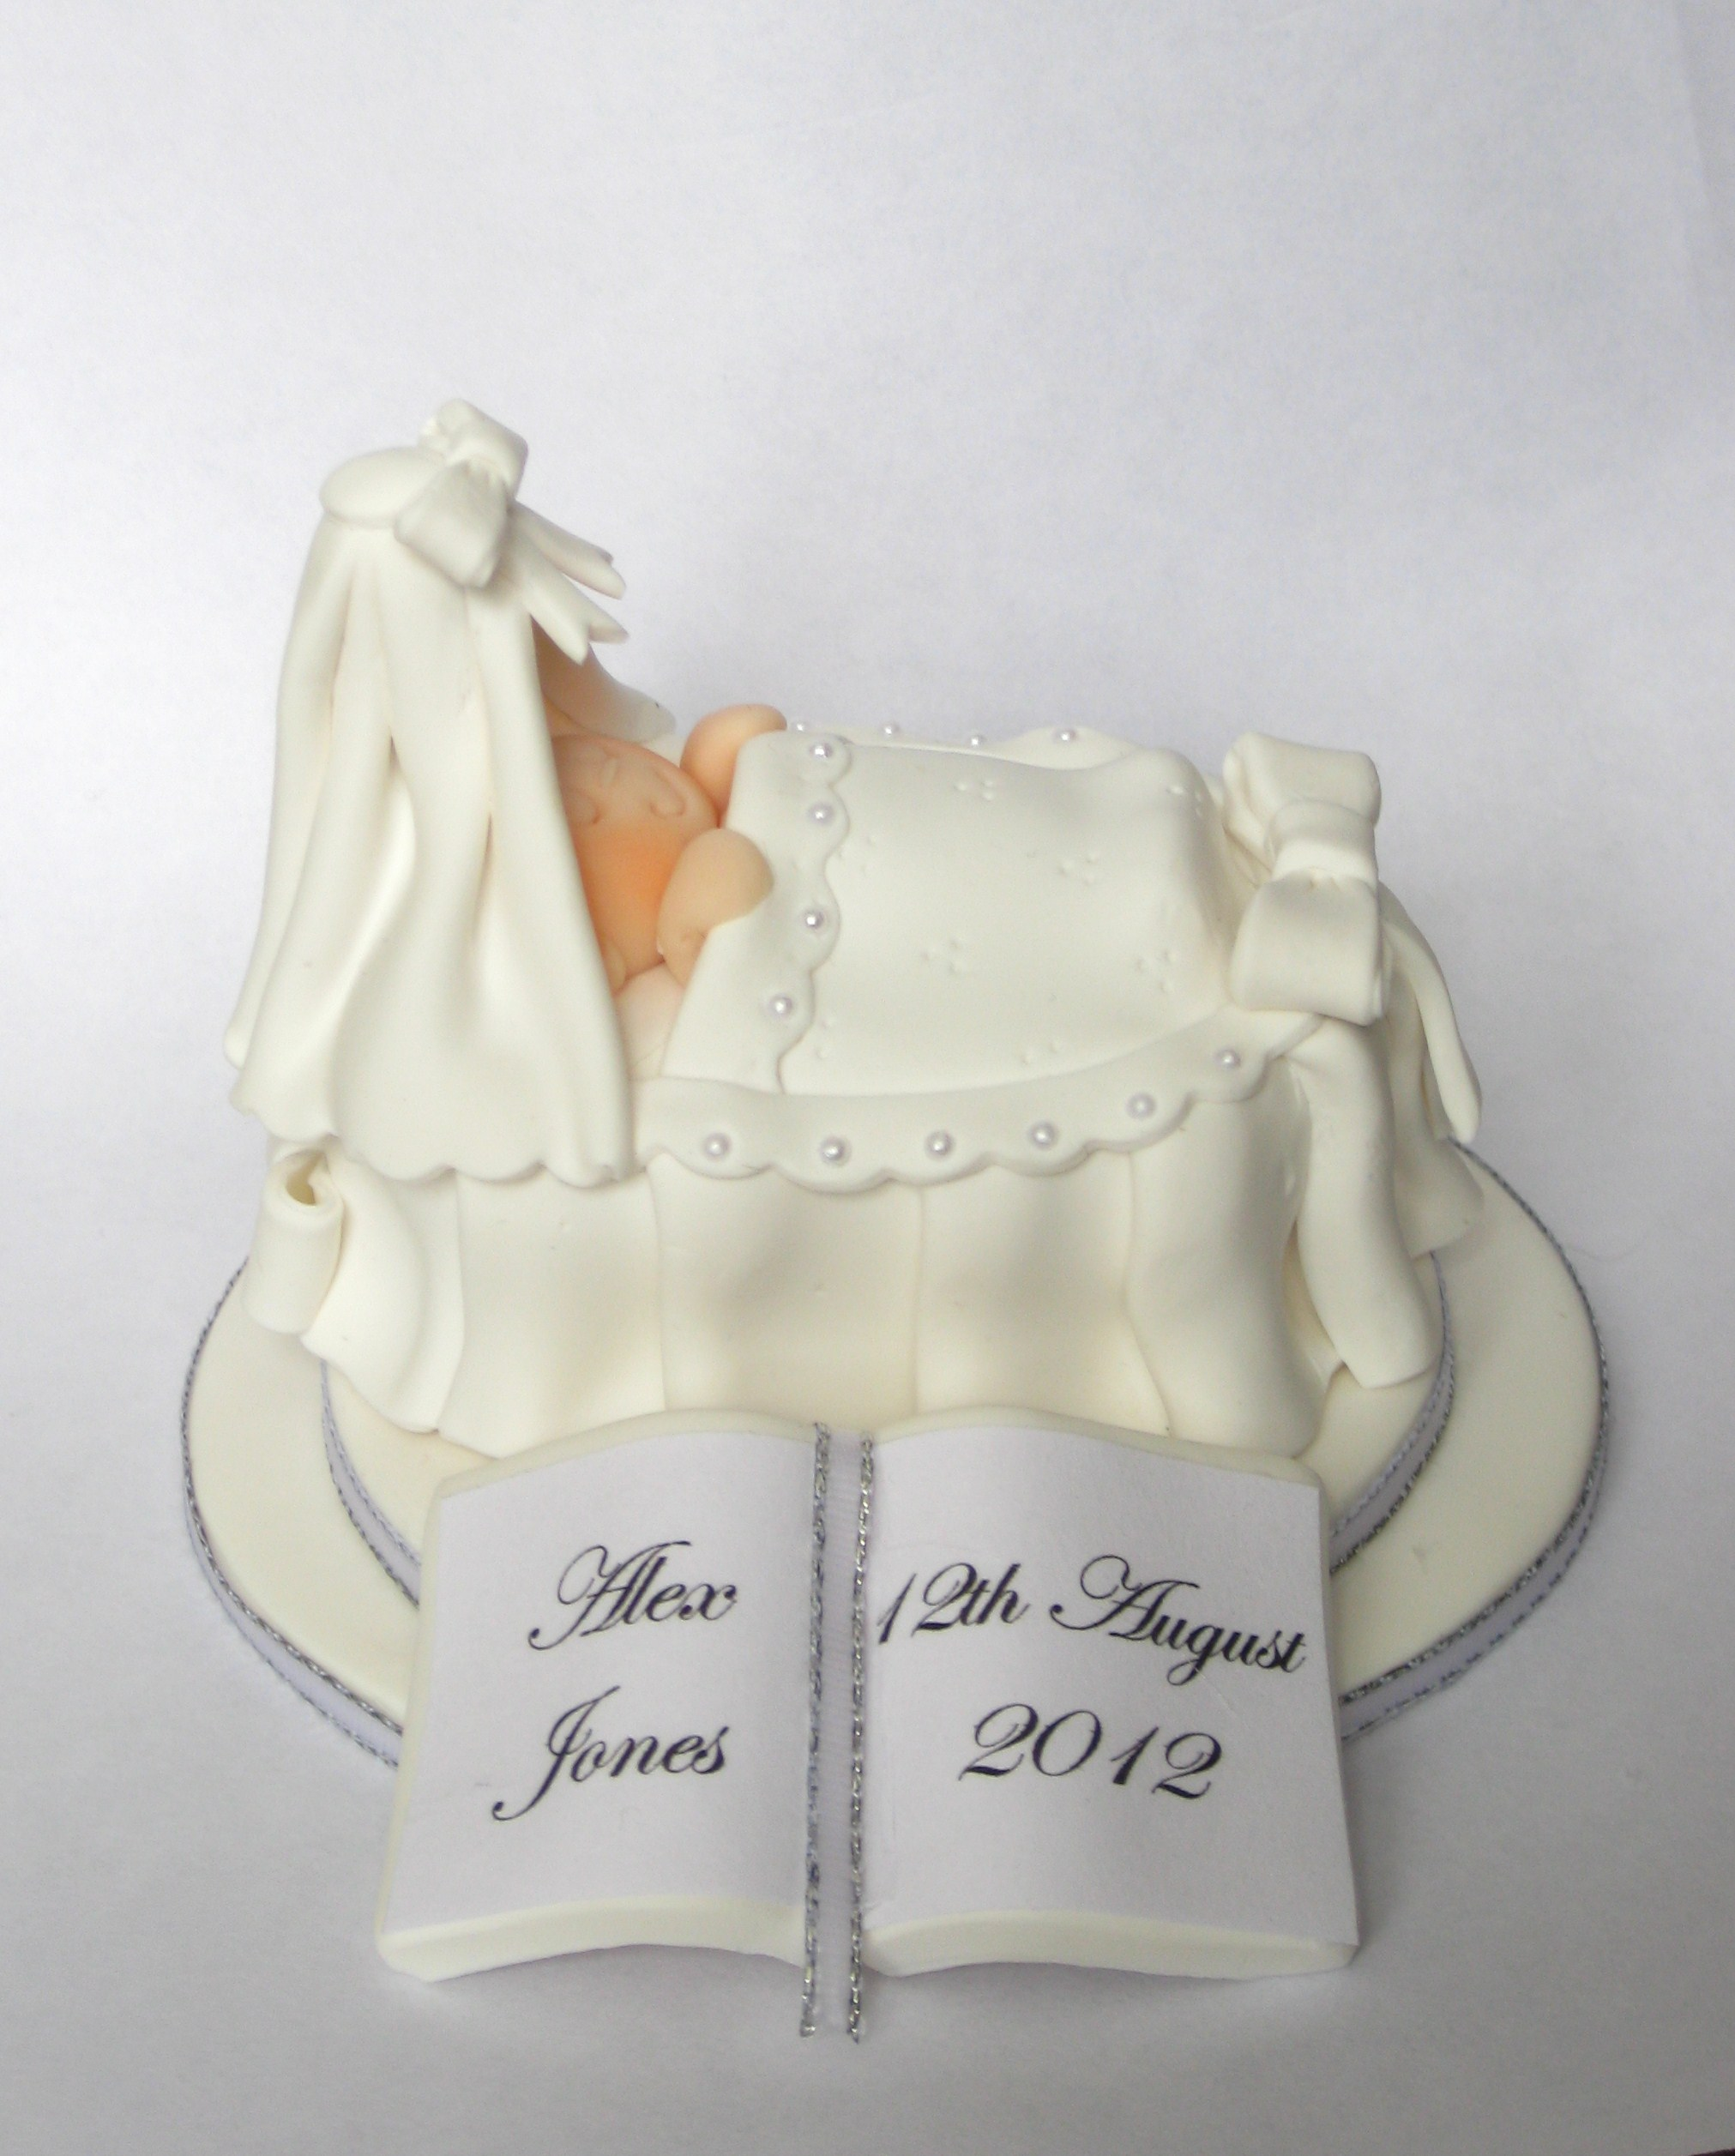 Cake Toppers Baby Christening : Personalised Christening Baby In Cradle Cake Topper ...